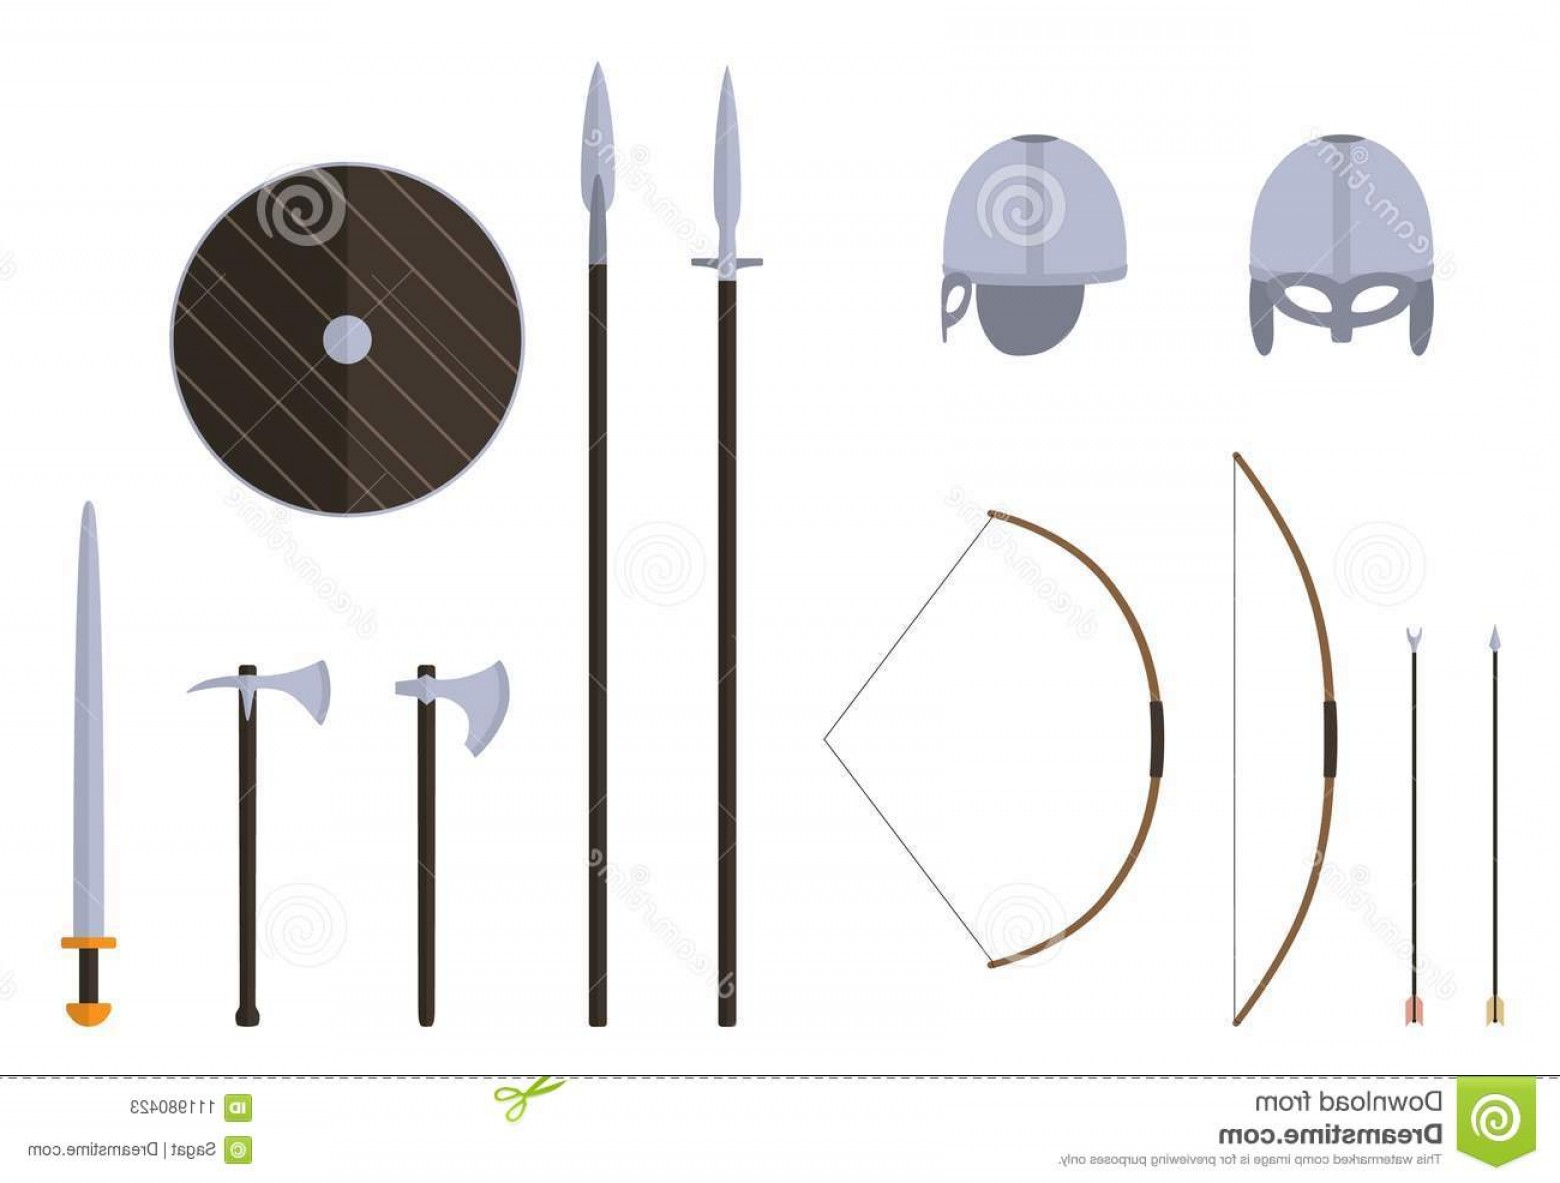 Pike Spear Vector: Viking Weapons Armors Set Viking Warrior Equipment Viking Weapons Armors Set Viking Warrior Equipment Sword Axe Spear Pike Image